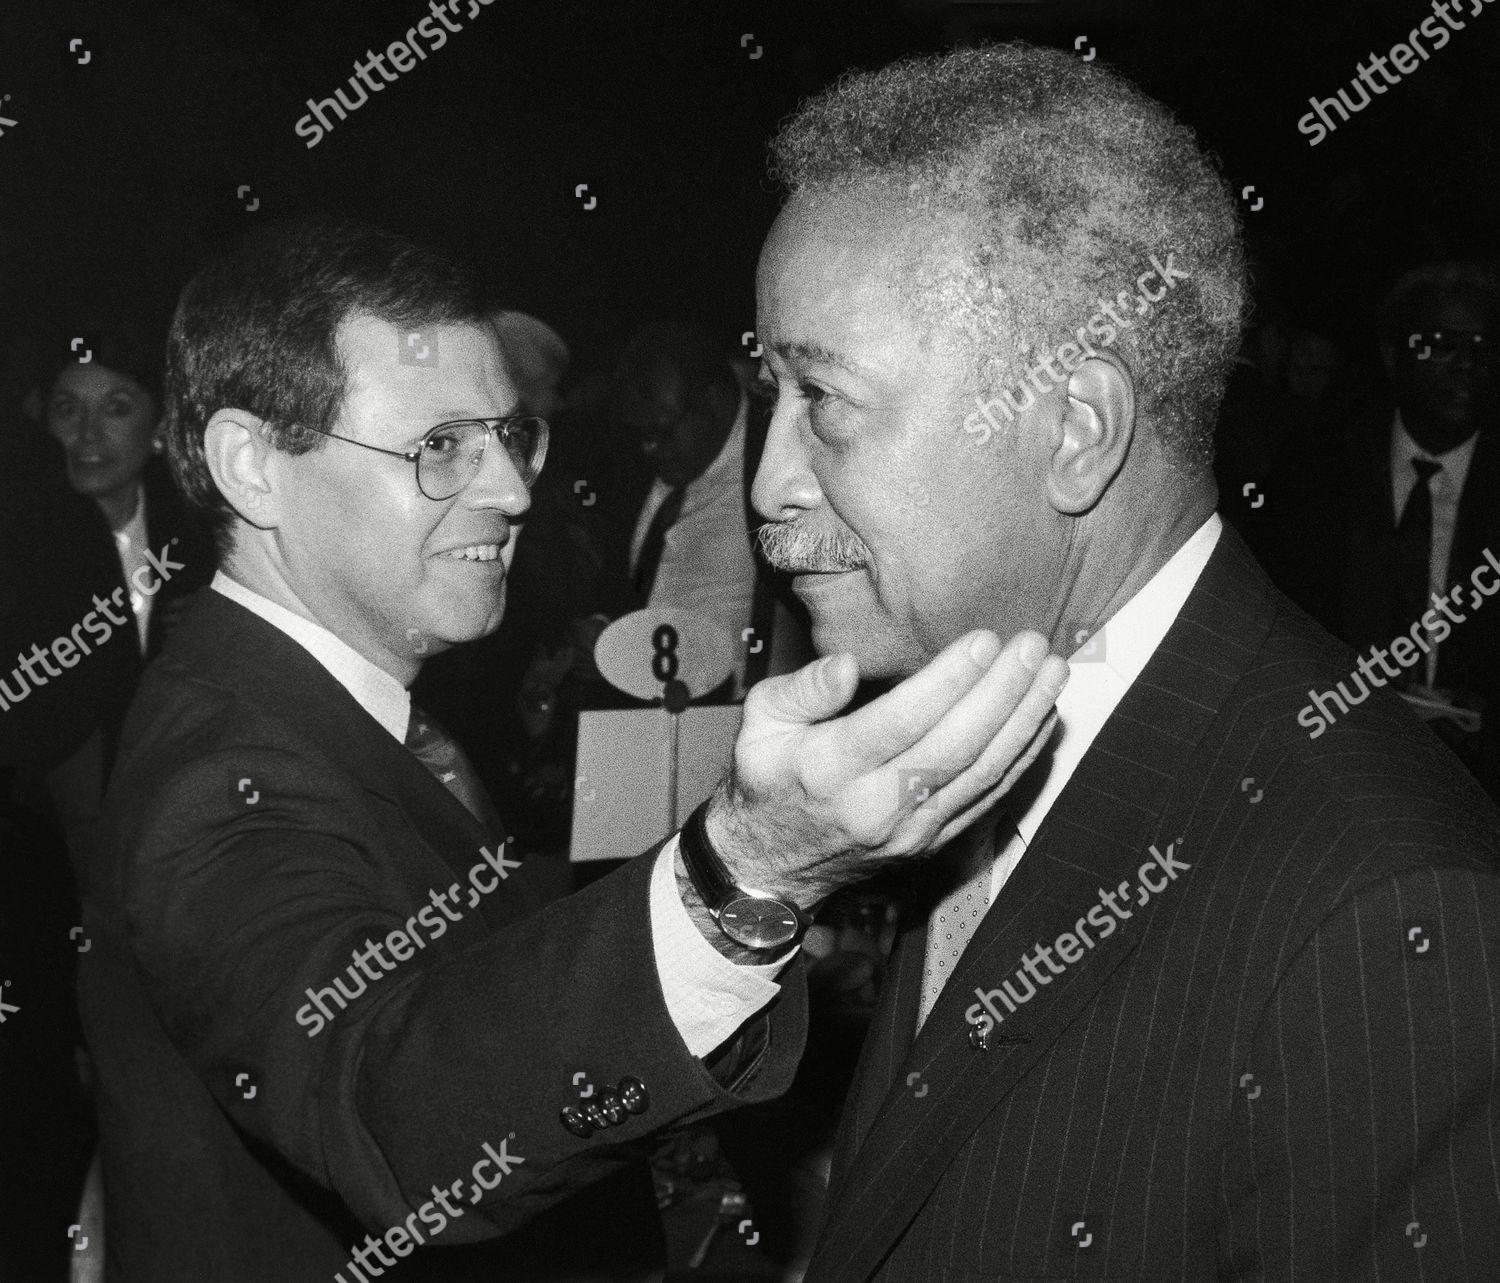 david dinkins mayorelect david dinkins given friendly editorial stock photo stock image shutterstock https www shutterstock com editorial image editorial david dinkins new york usa 6546490a